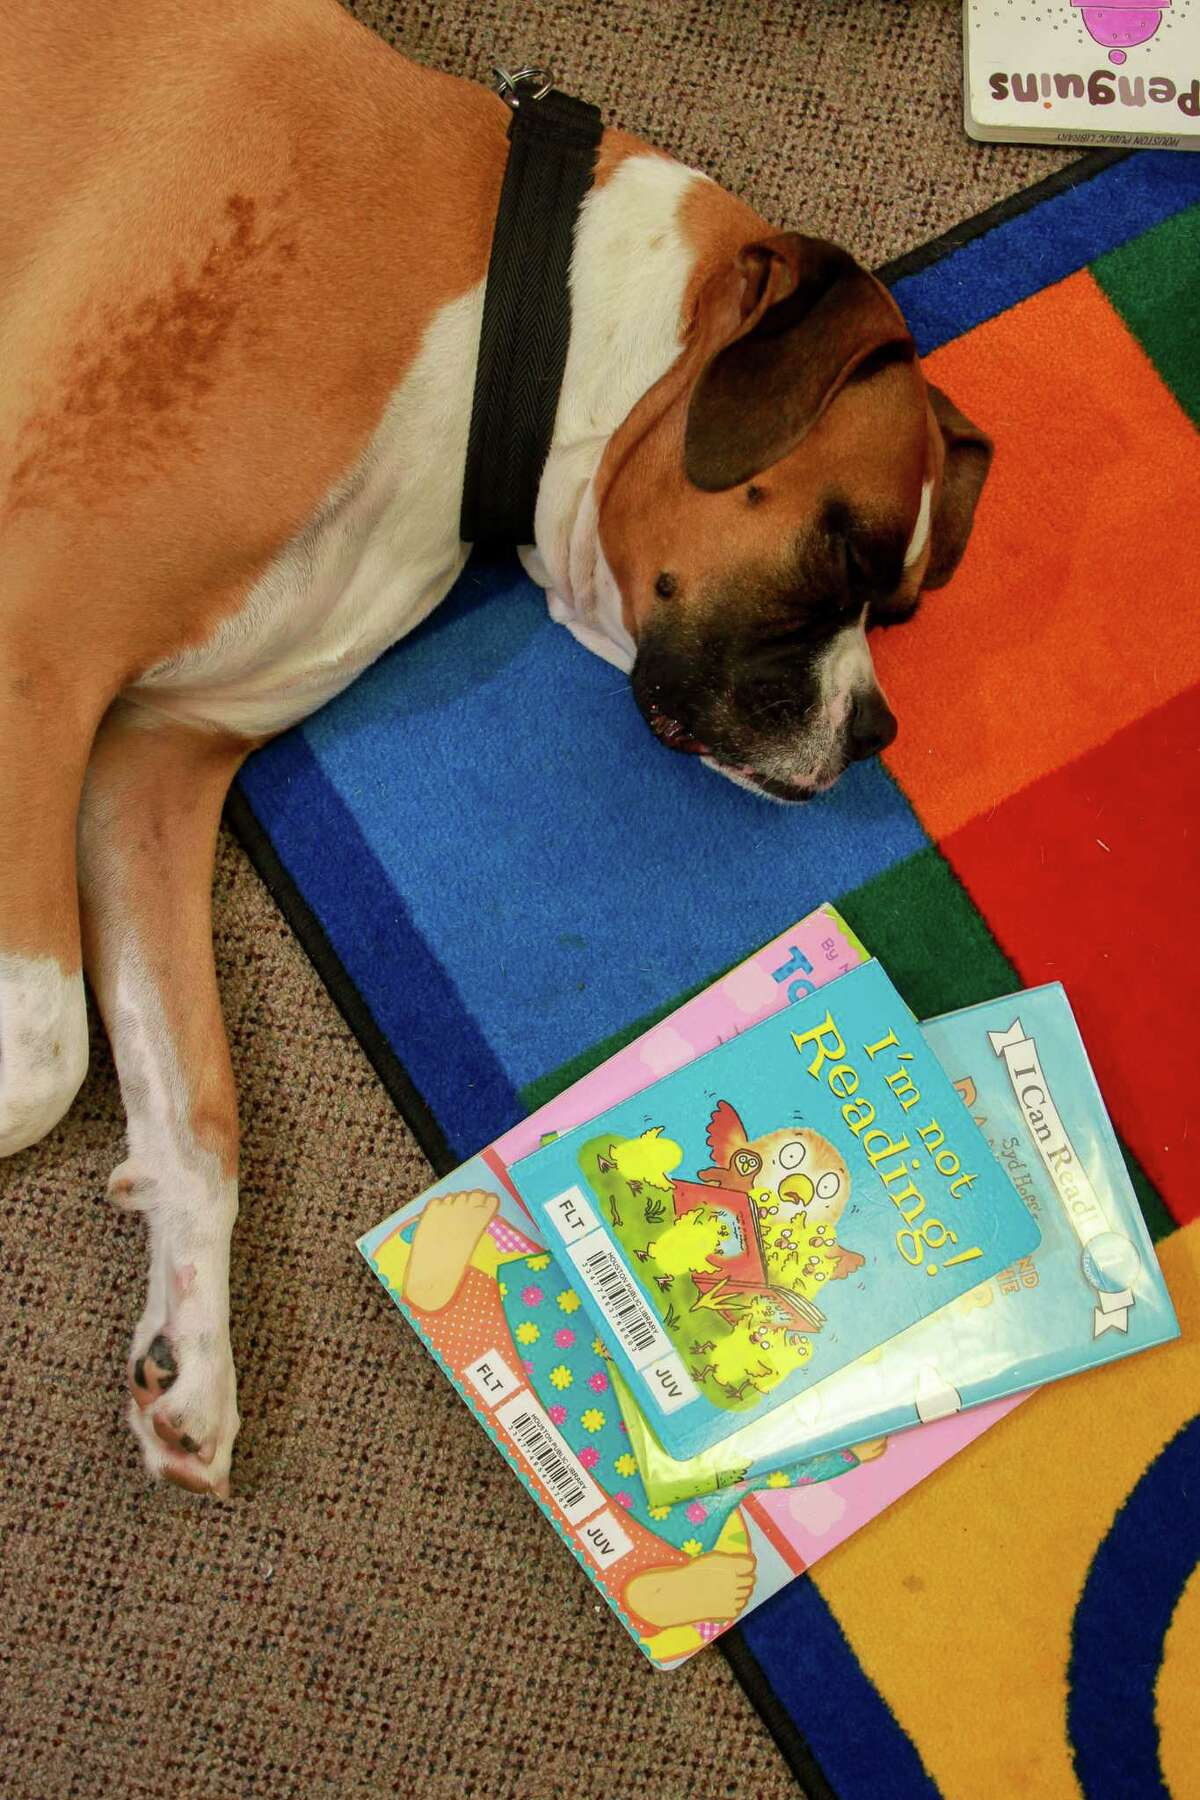 Baker, the boxer owned by Judith Moore, rests at the Houston Public Library, George B. Meyer, Sr. Branch. Baker was part of a group of trained therapy dogs at the library to ease reading discomforts and encourage children in reading.